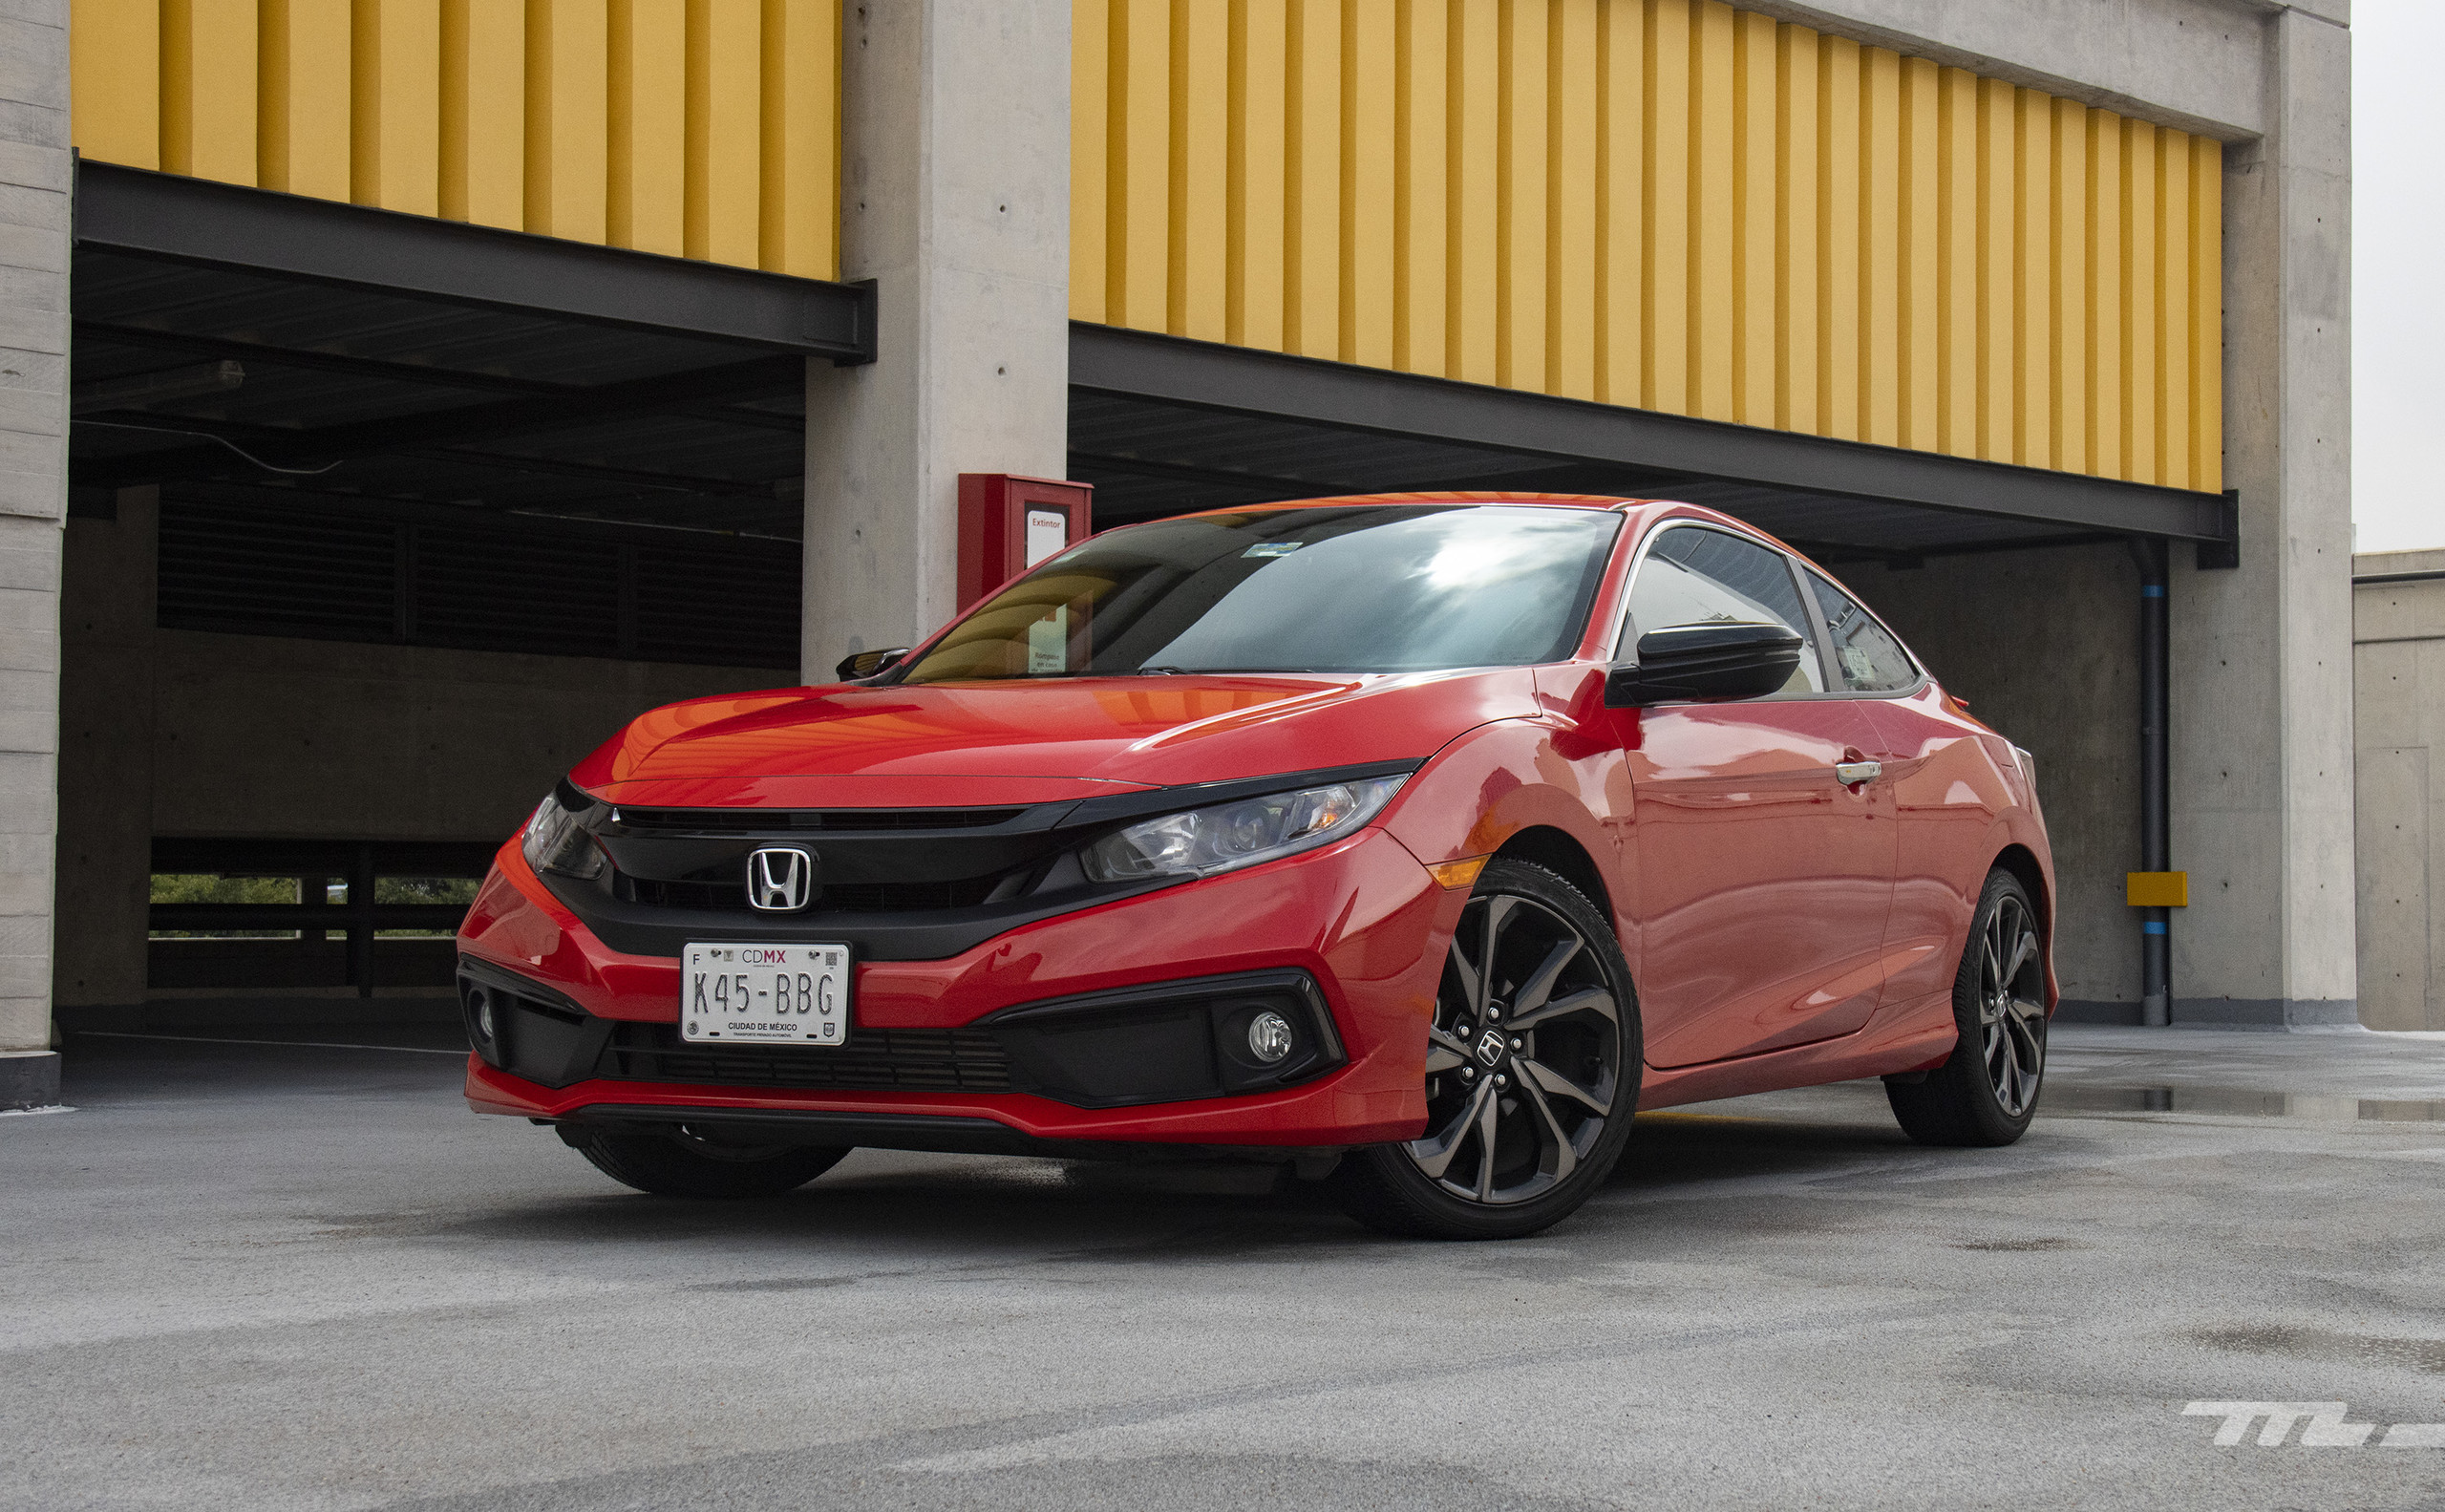 Foto de Honda Civic Coupé 2020 (16/70)